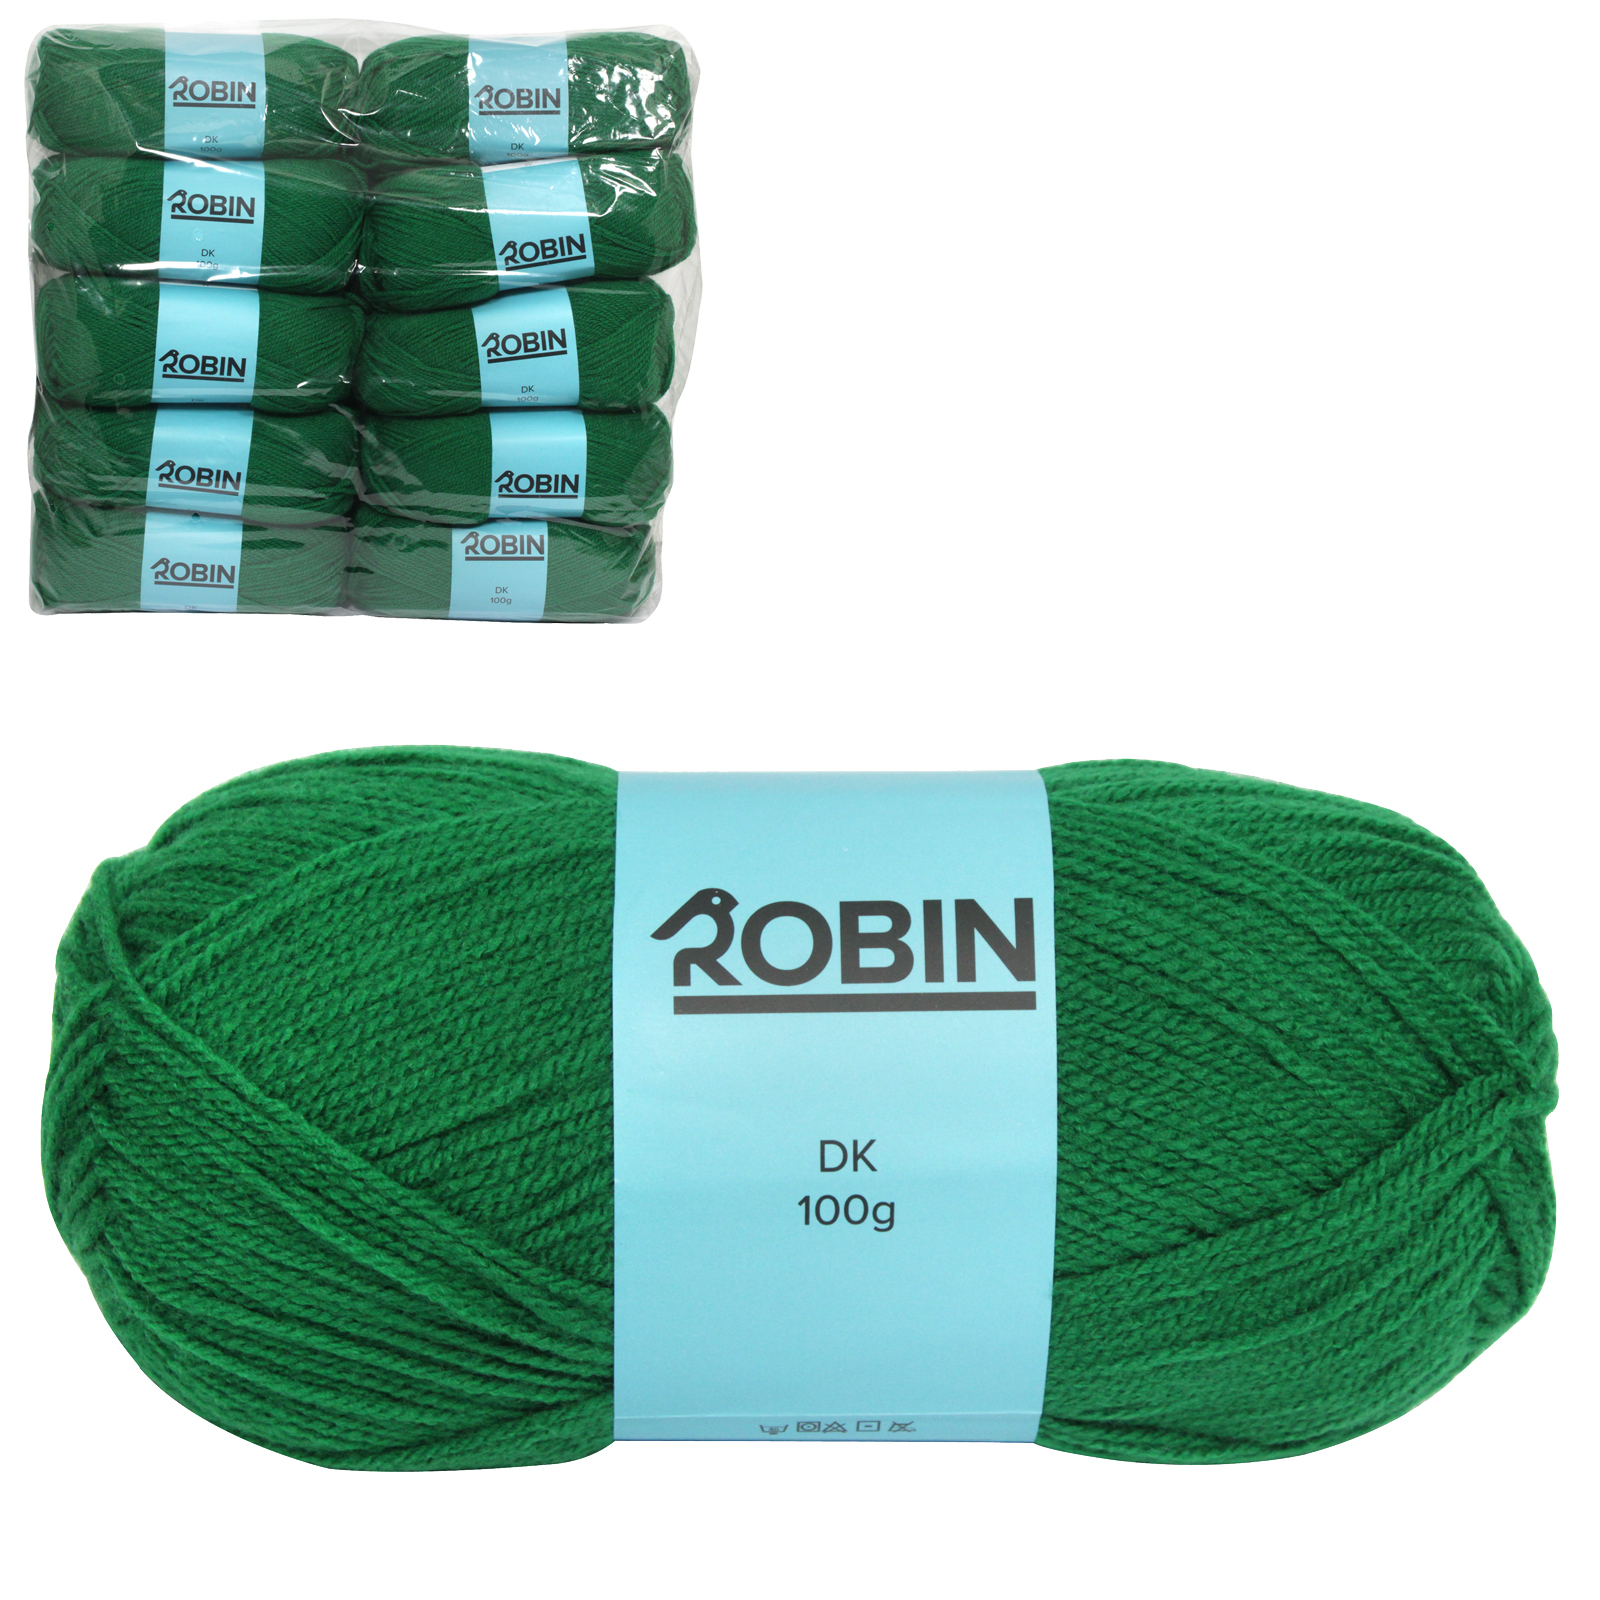 ROBIN 4032 DOUBLE KNIT WOOL WEIGHT 100GM LENGTH 300M EMERALD X10